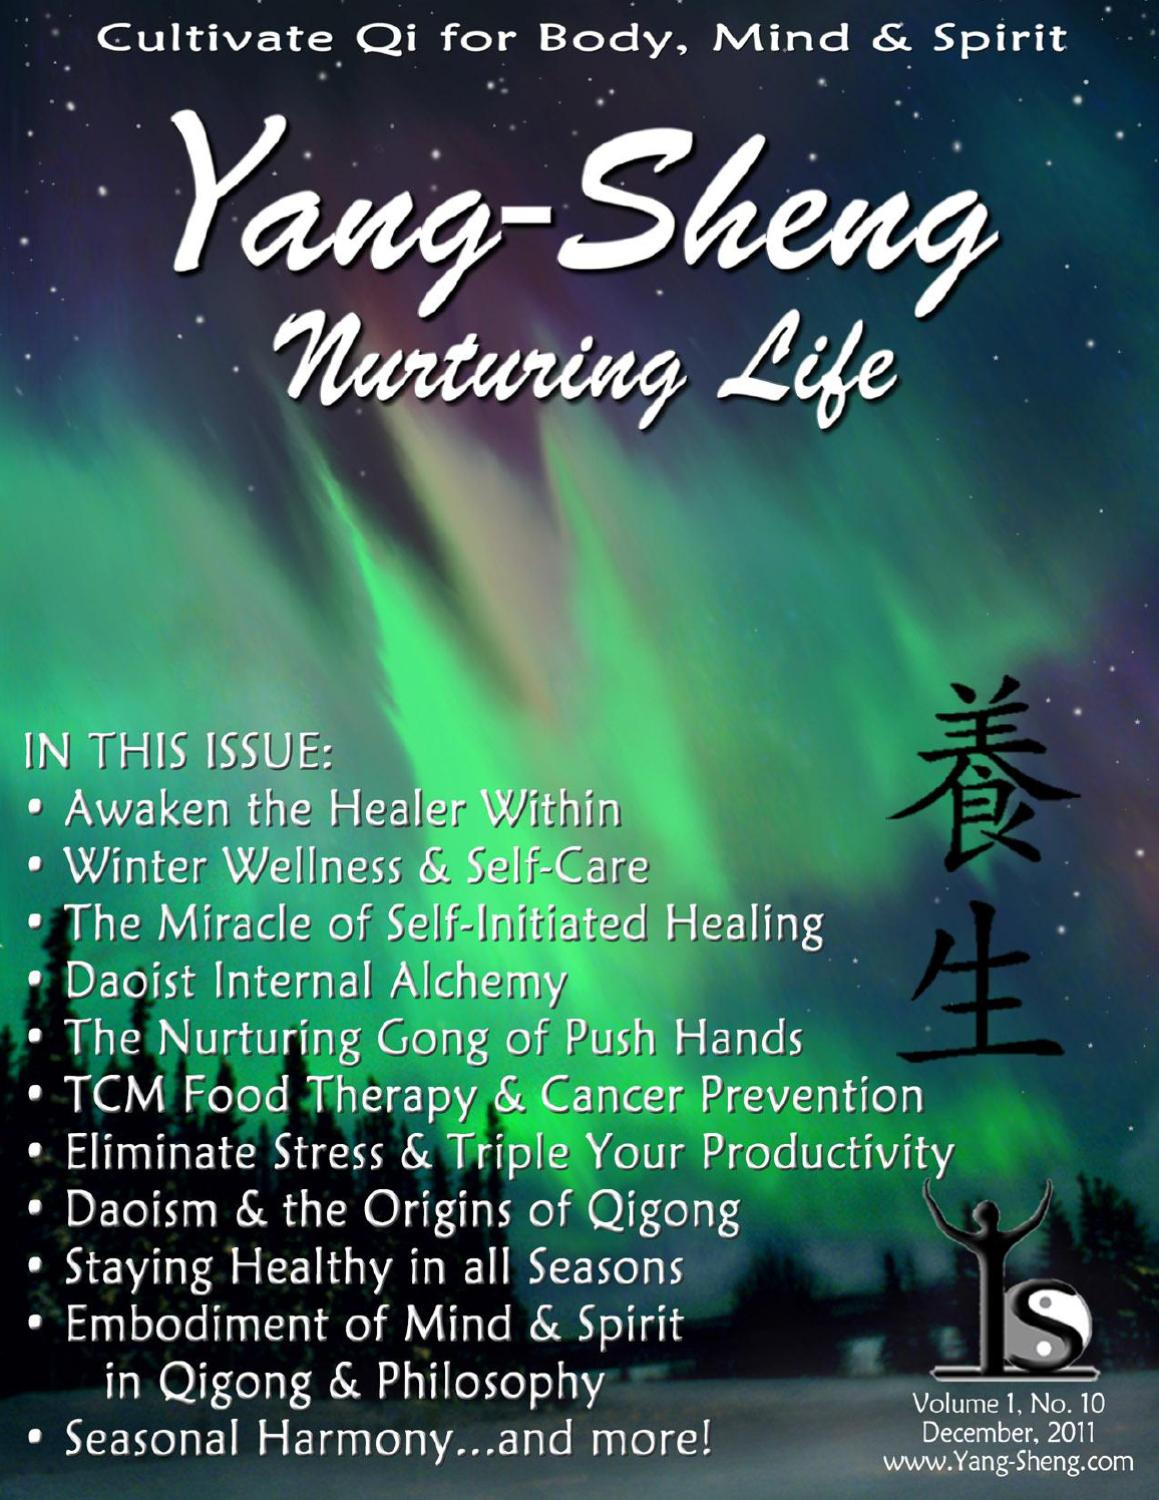 Yang-Sheng (Nurturing Life) December 2011 by Dao of Well Being - issuu